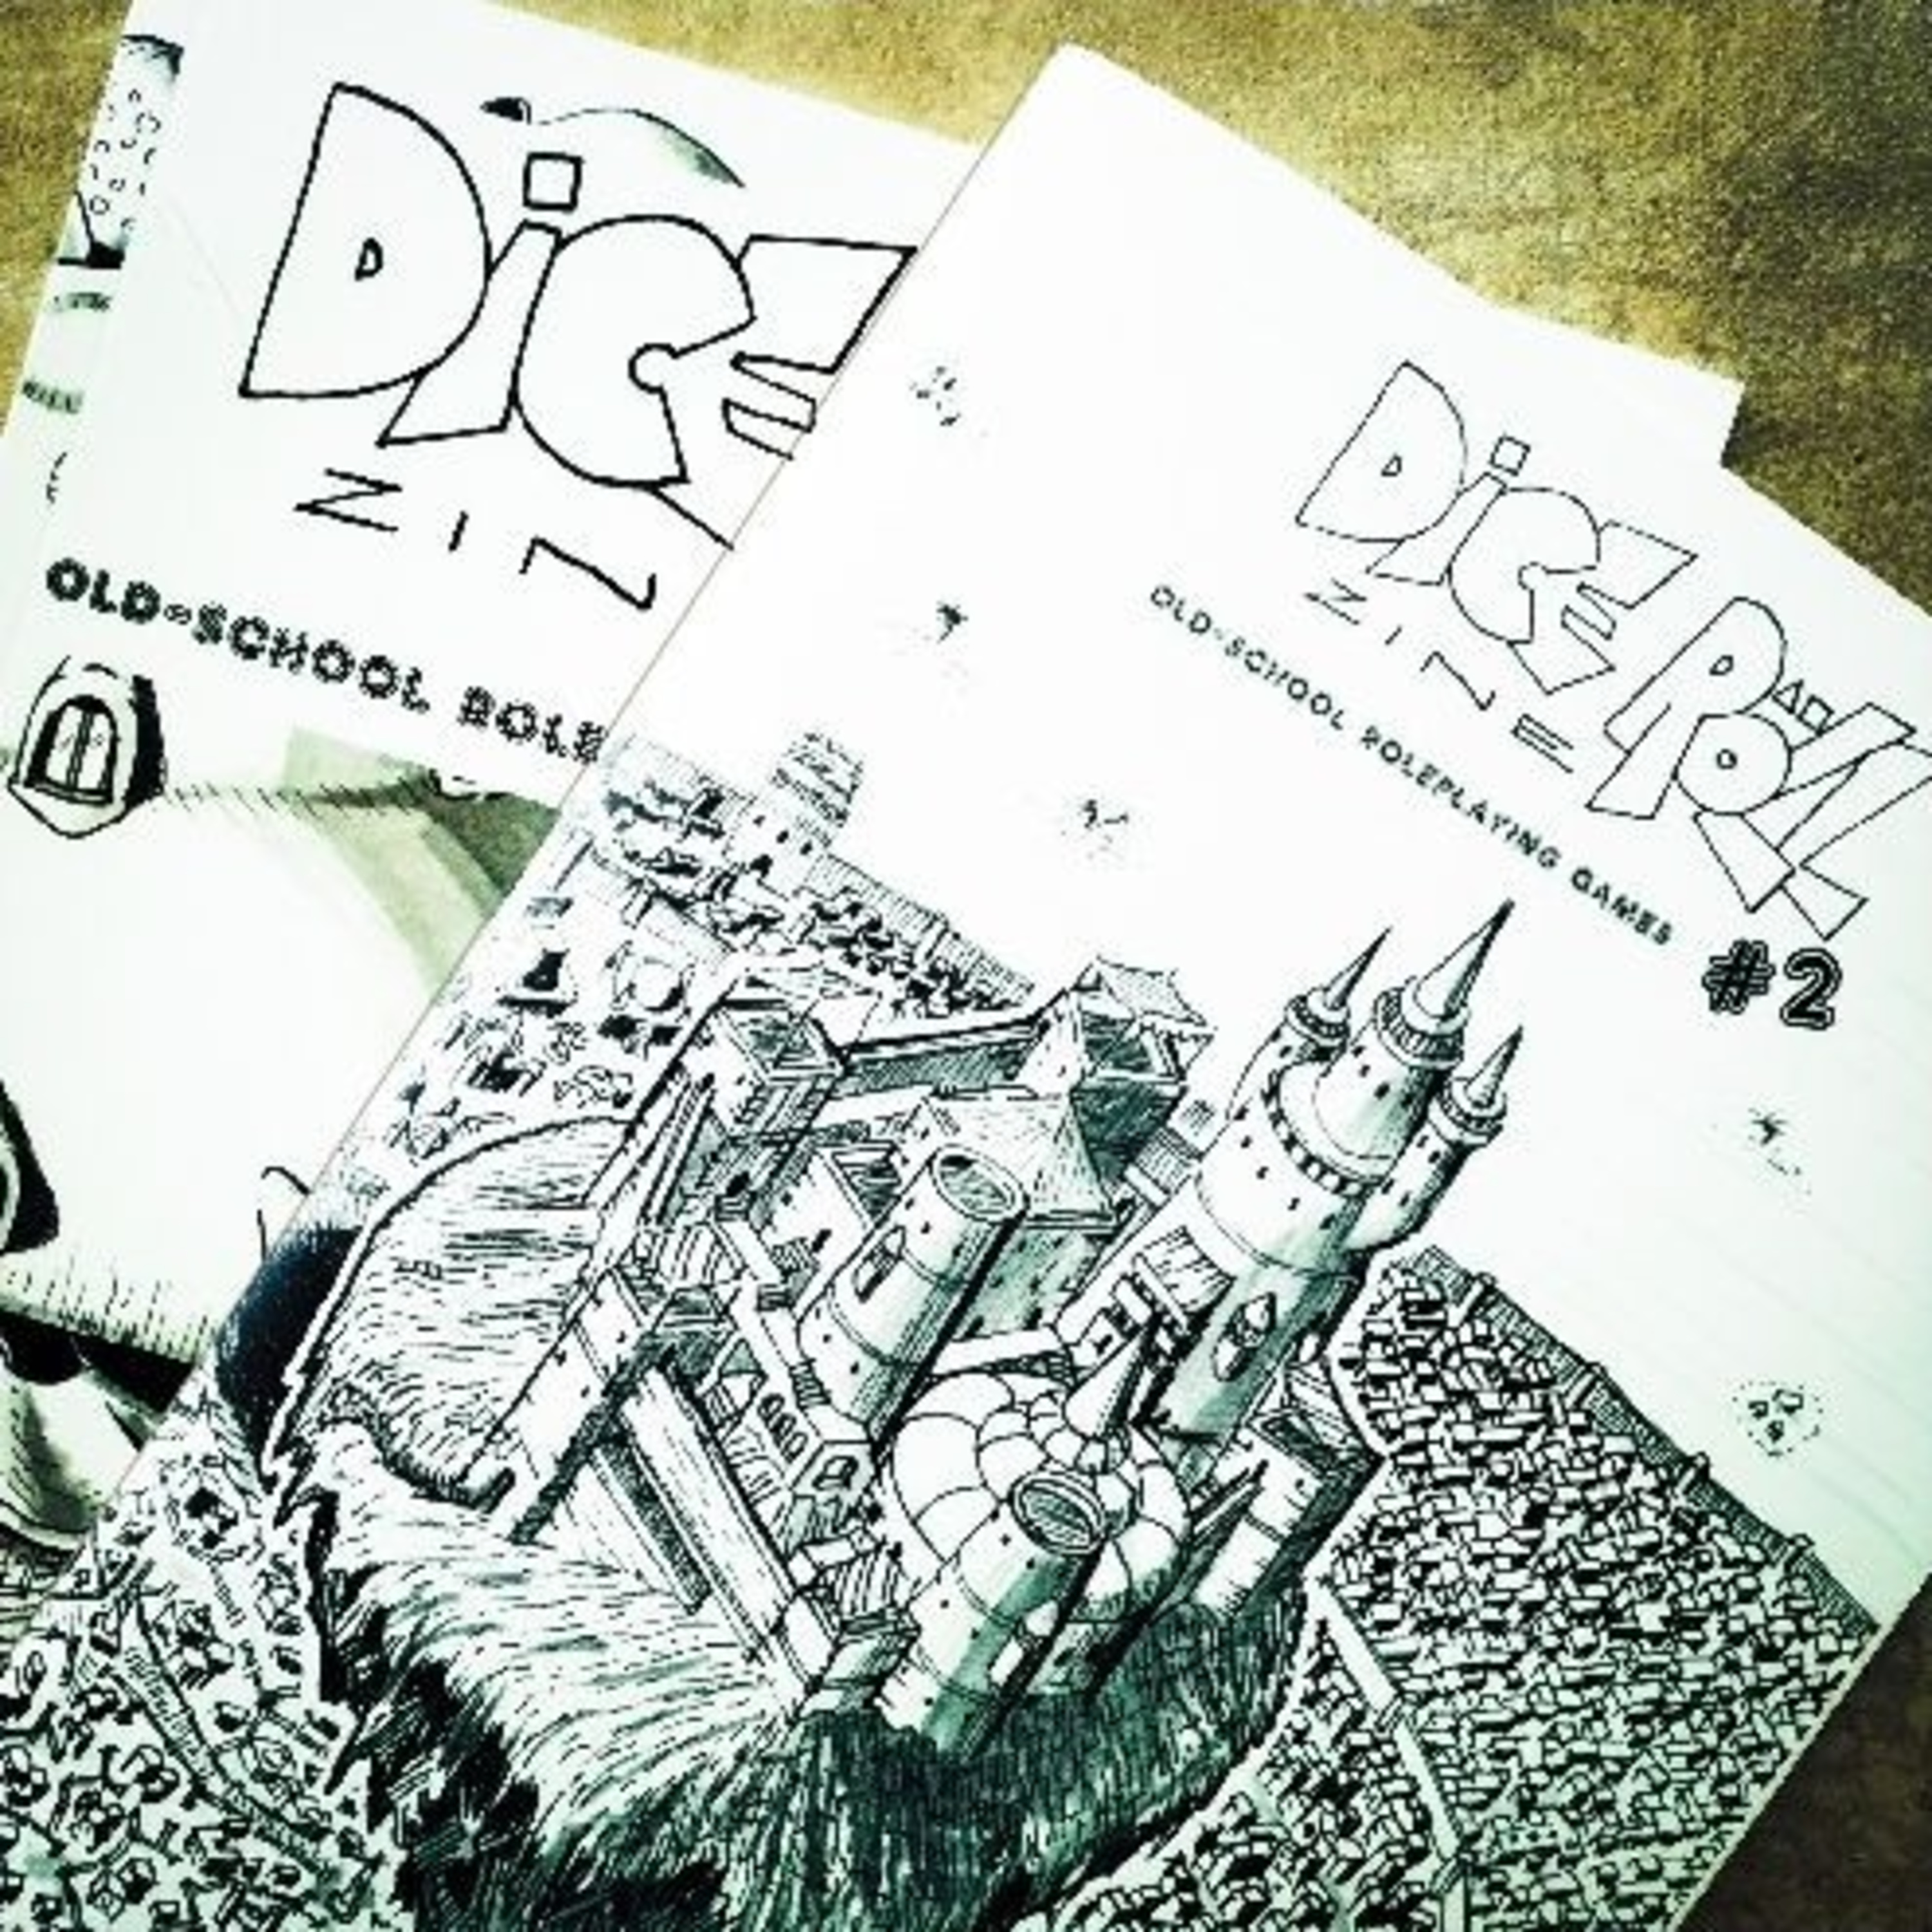 Dice Roll Zine 1&2 Overview